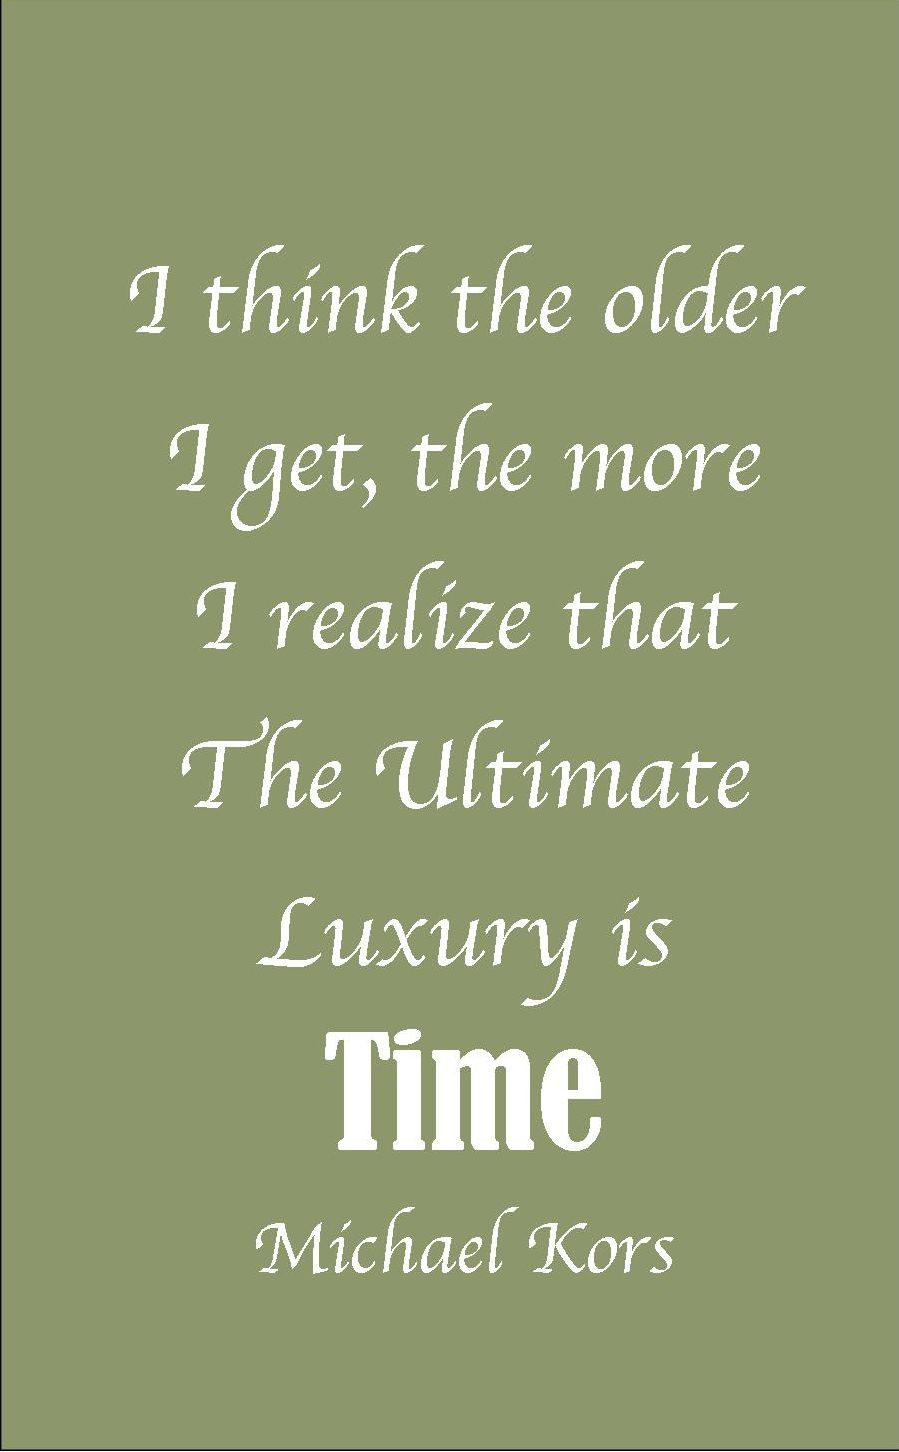 Hotel Quotes Noticed for Luxury and Elegance   Inspirational